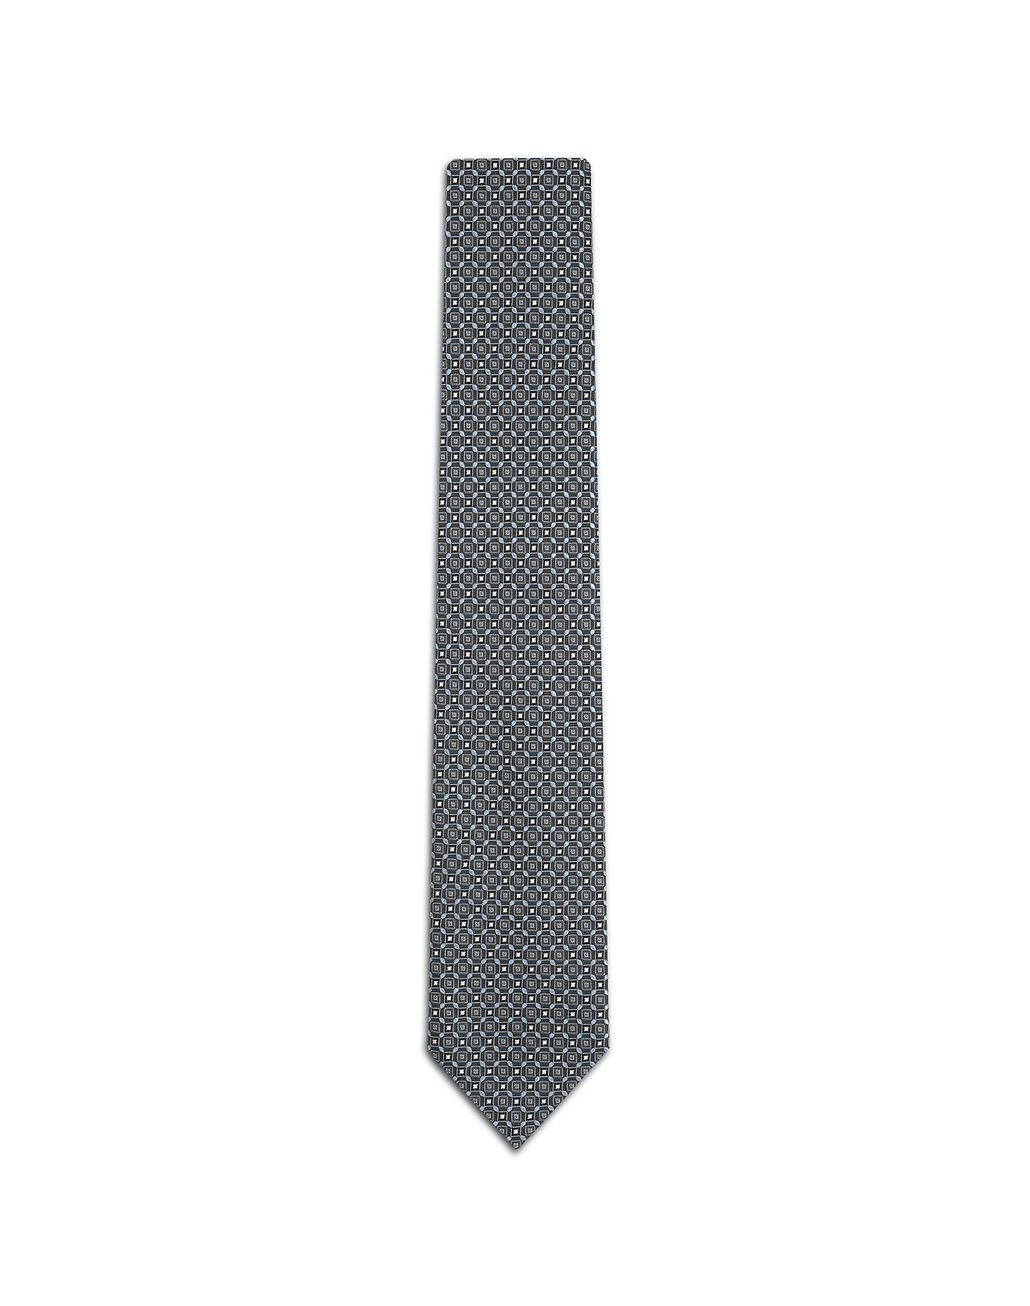 BRIONI Midnight Blue Medallion Tie Tie Man f